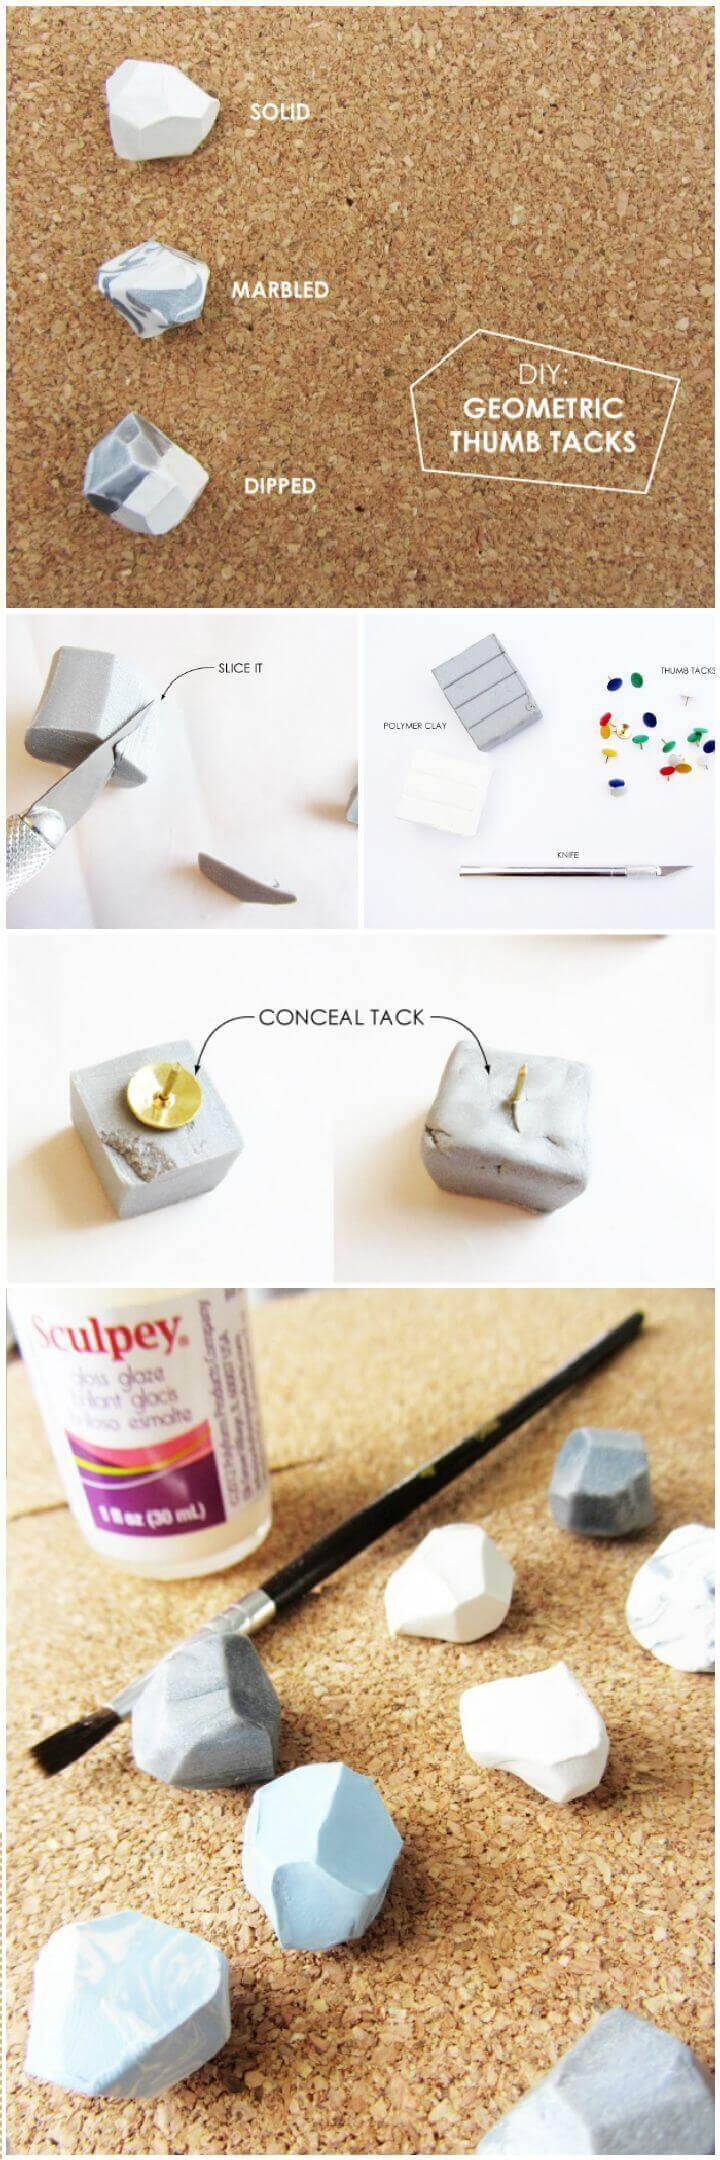 DIY Geometric Thumb Tacks